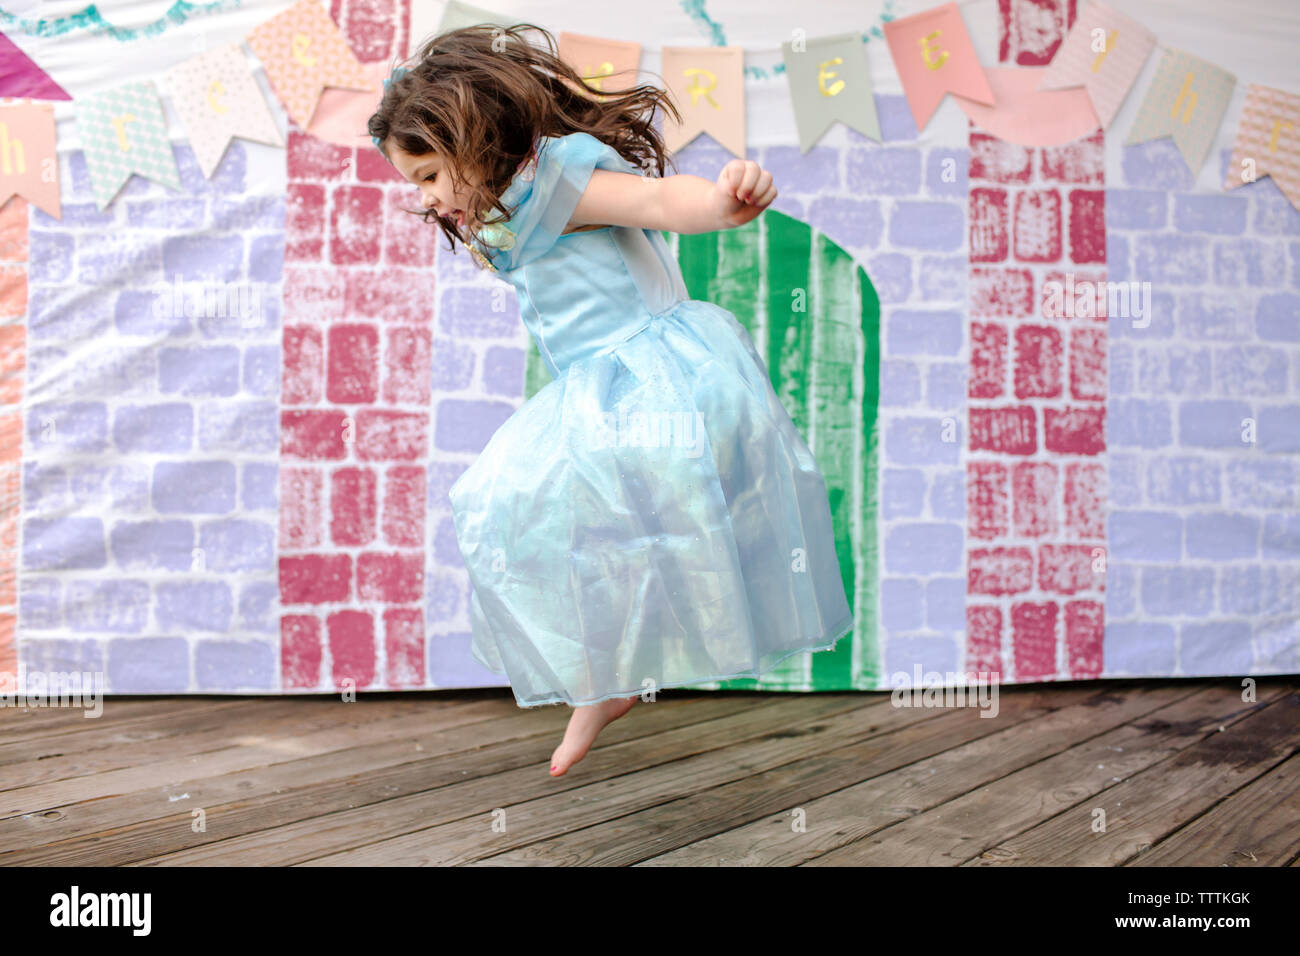 Side view of girl jumping on floorboard against castle painting during princess party - Stock Image